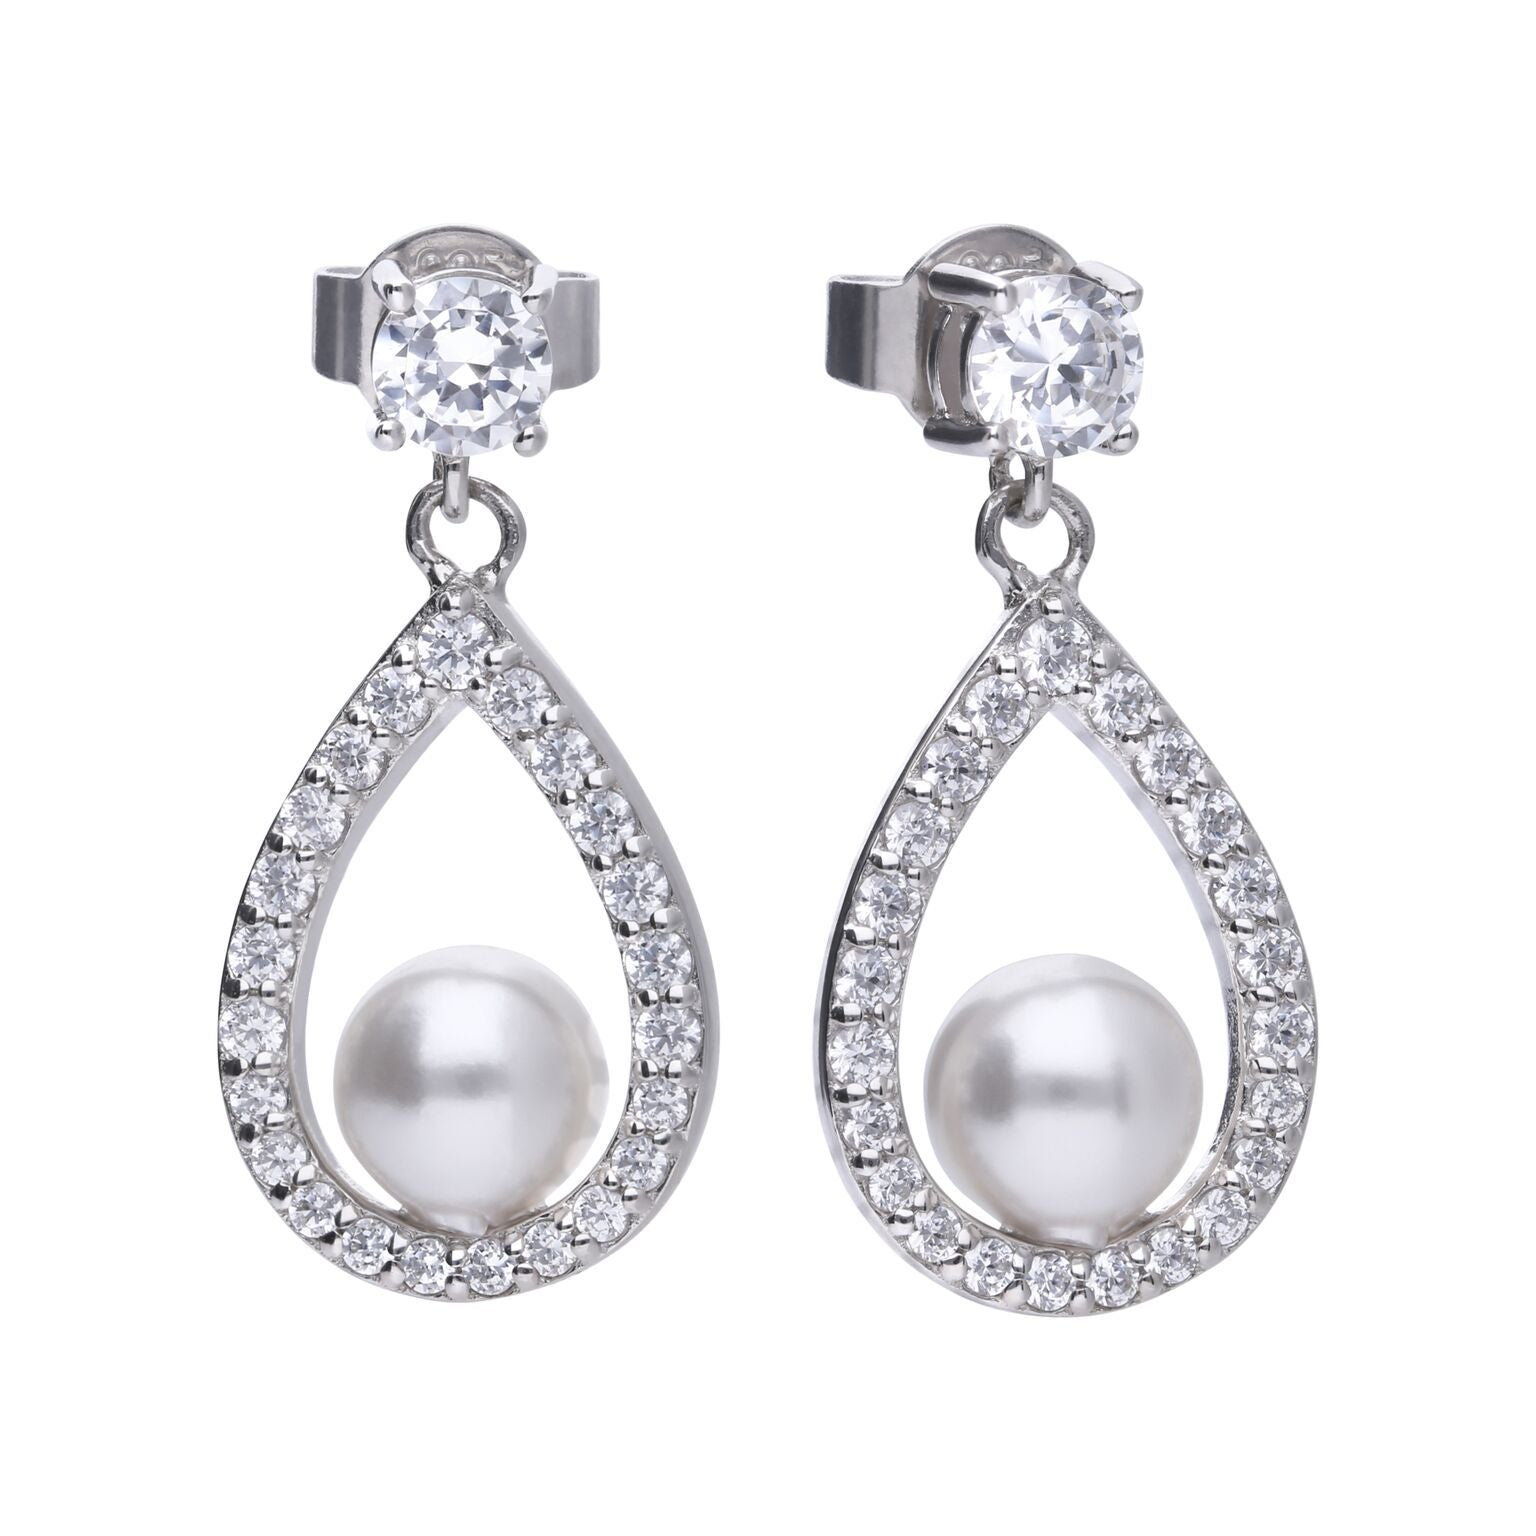 Drop earrings with open teardrop set with cubic zirconia's with a pearl in the base of the teardrop